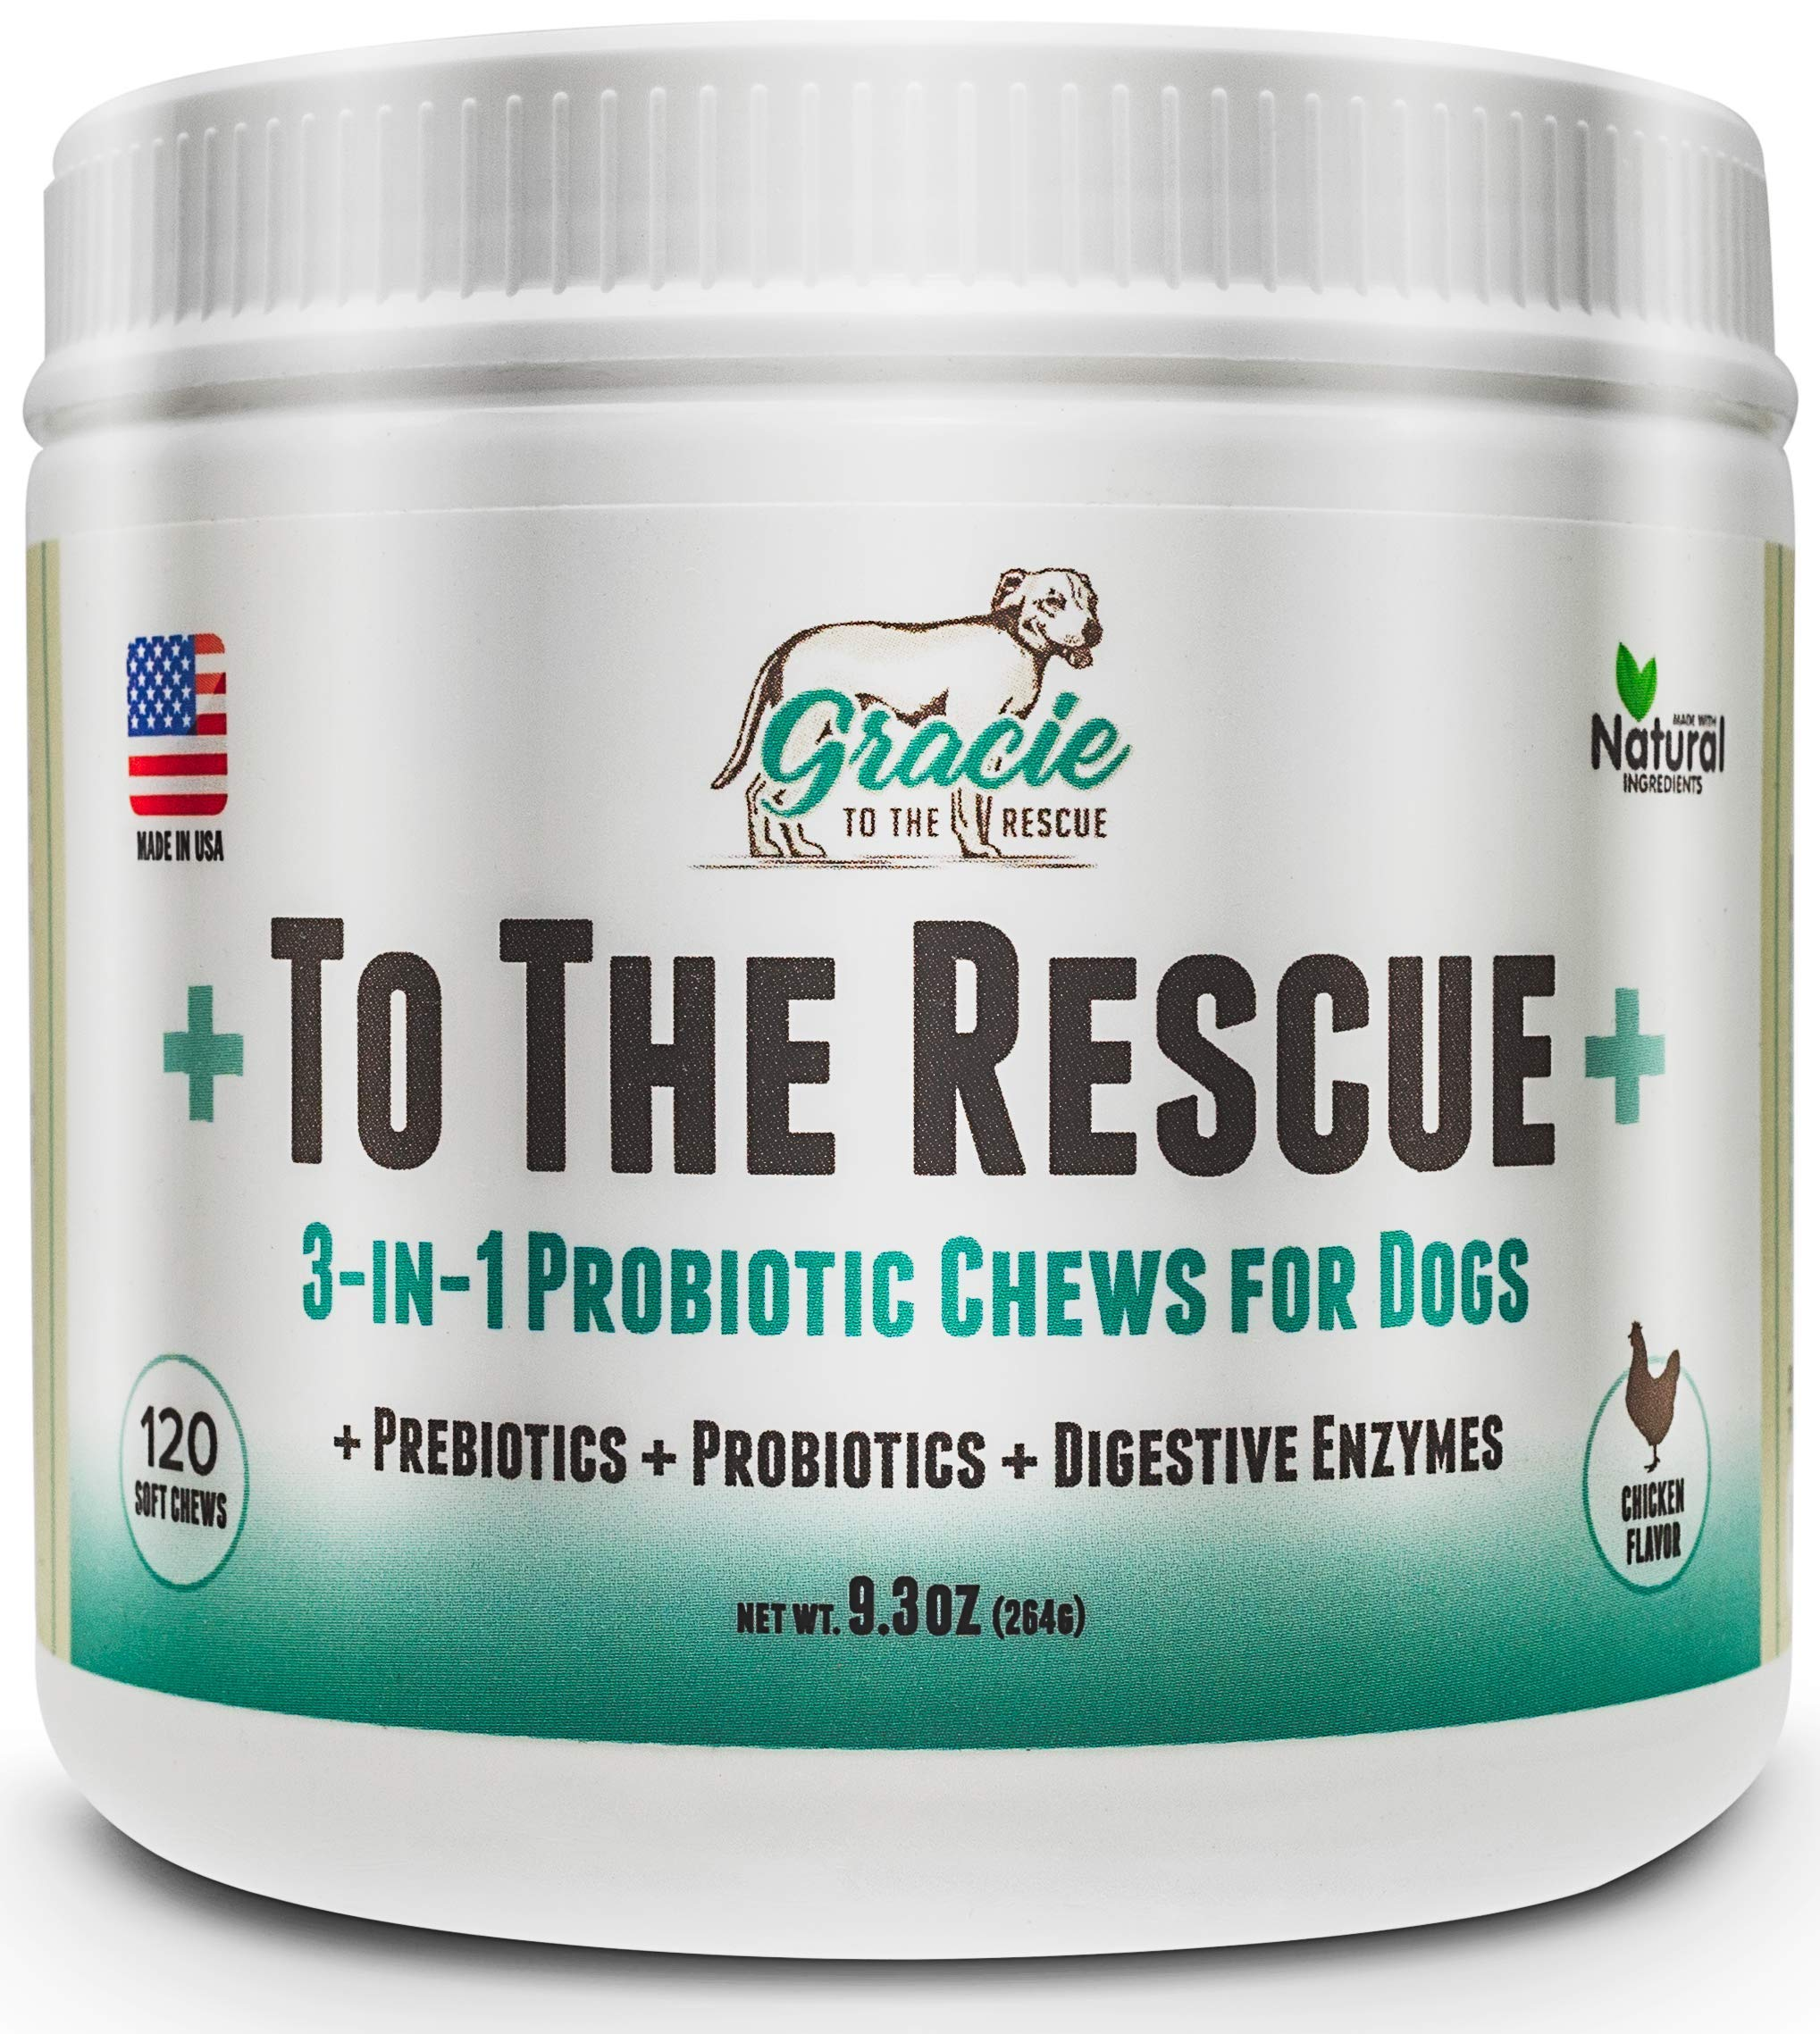 Probiotics for Dogs - 120 Soft Chews - All Natural Dog Probiotics, Prebiotics and Digestive Enzymes for Constipation, Immune Support, Diarrhea, Upset Stomach, and UTI's +To The Rescue+ by To The Rescue